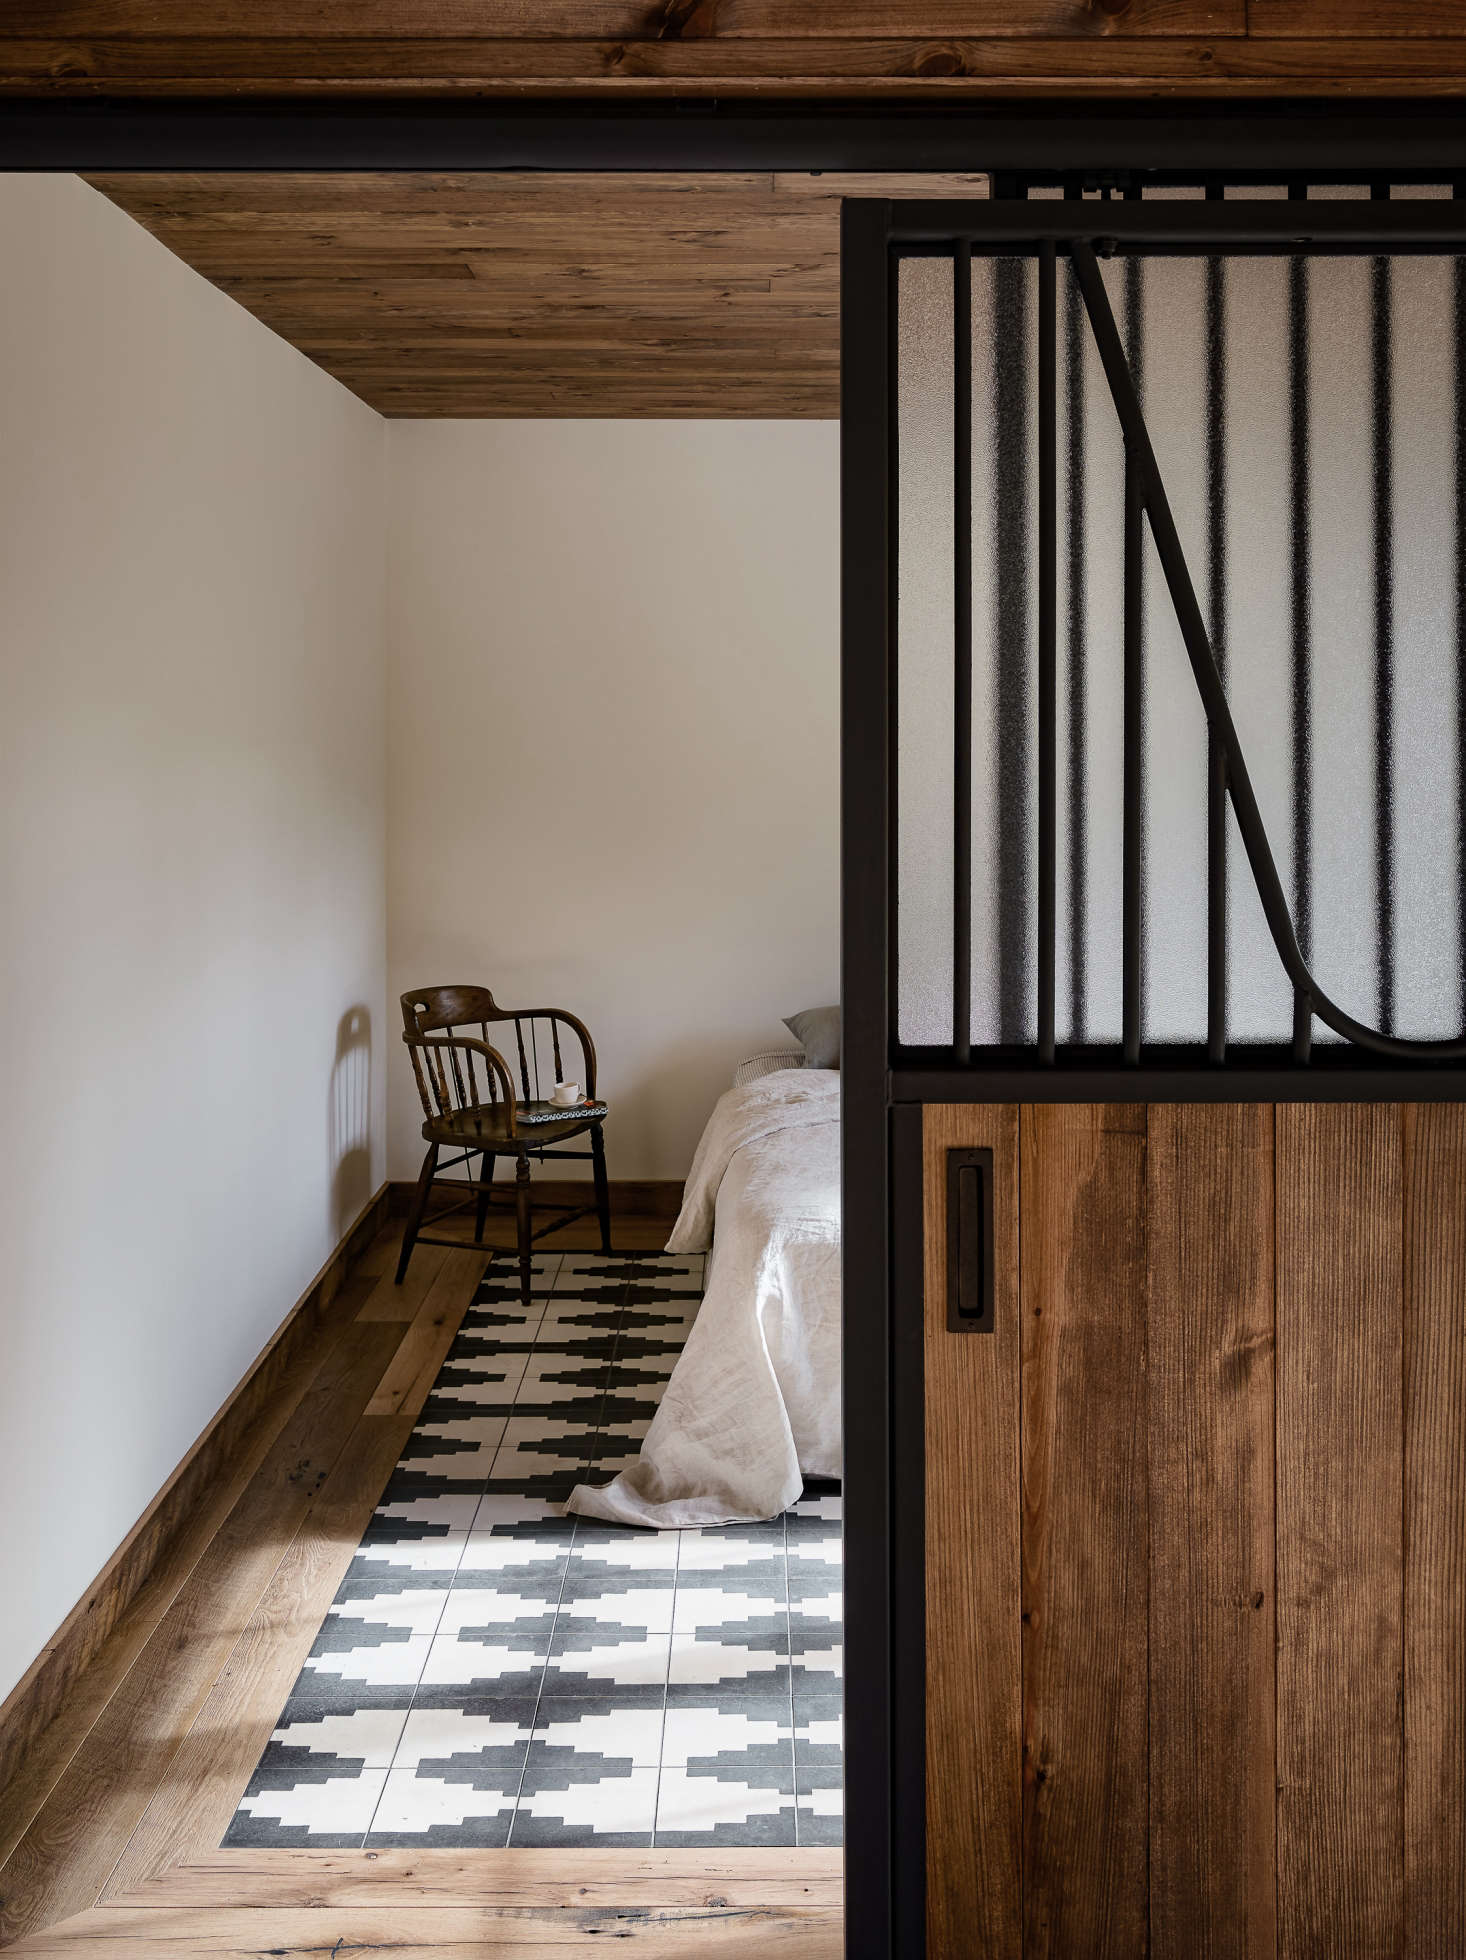 Though the guesthouse was rebuilt, the two bedrooms have the exact same dimensions and location as two preexisting horse-birthing stalls. Zames even used the same sliding doors, with refinished metal and obscured glass added for privacy.